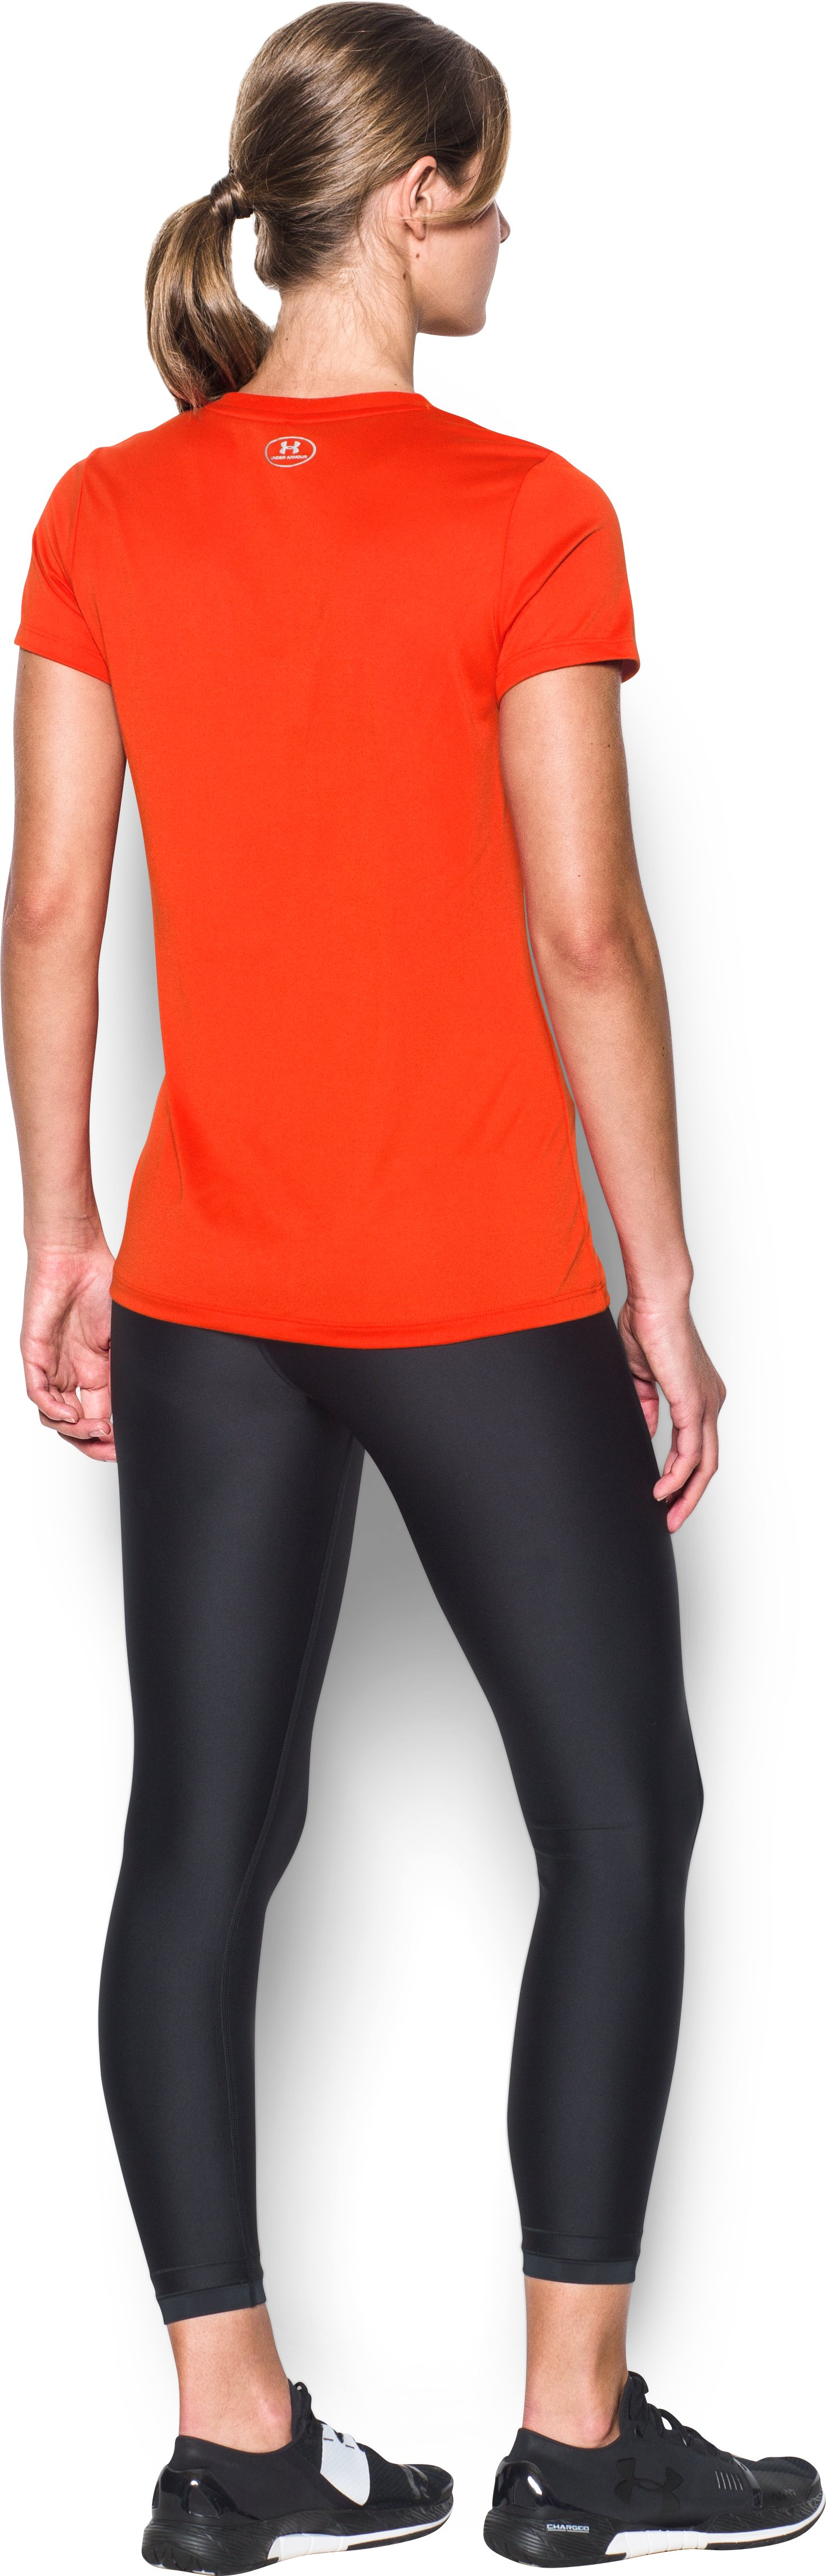 Women's Miami Marlins UA Tech™ V-Neck T-Shirt, Dark Orange, Back